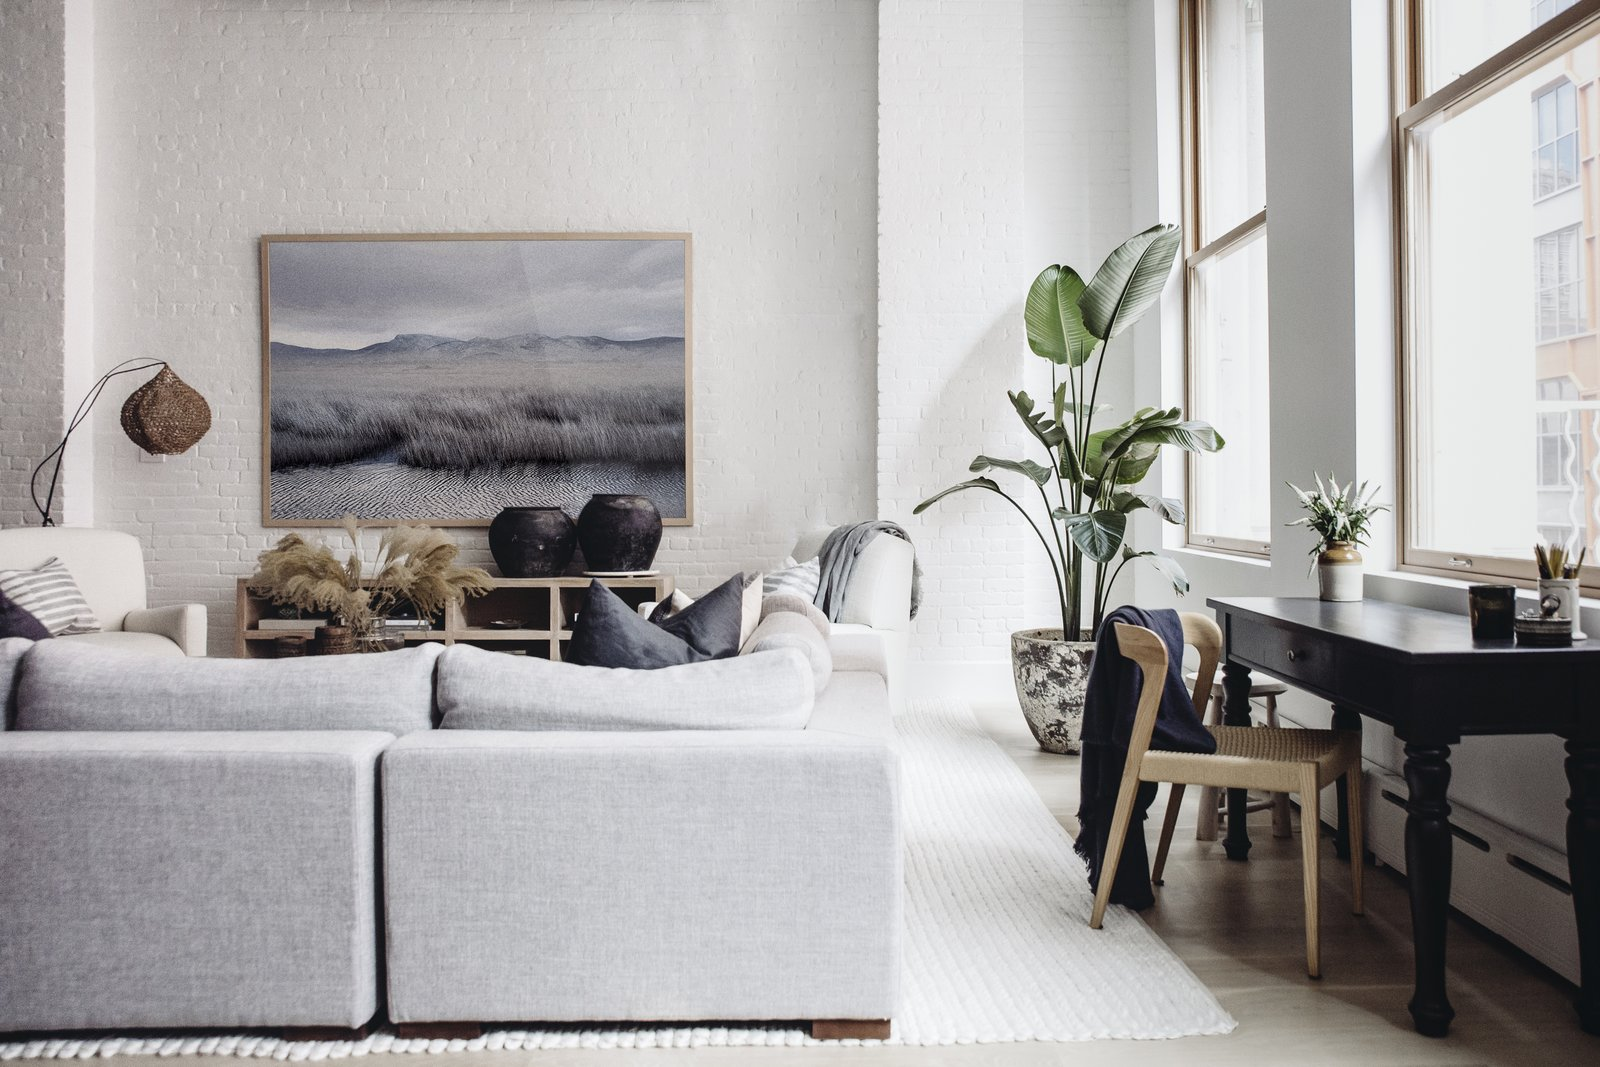 The airy living room shows off a monochrome landscape by Petros Koublis framed by an Interior Define sectional and Verellen coffee table. Extra accents include a floor lamp by Bungalow Decor in Westport, block print pillows by Susan Connor, aerrain plant pot, and black urns by Habitat Greenwich. Tying the space together is a rug from Restoration Hardware. (Chloe Leroux)